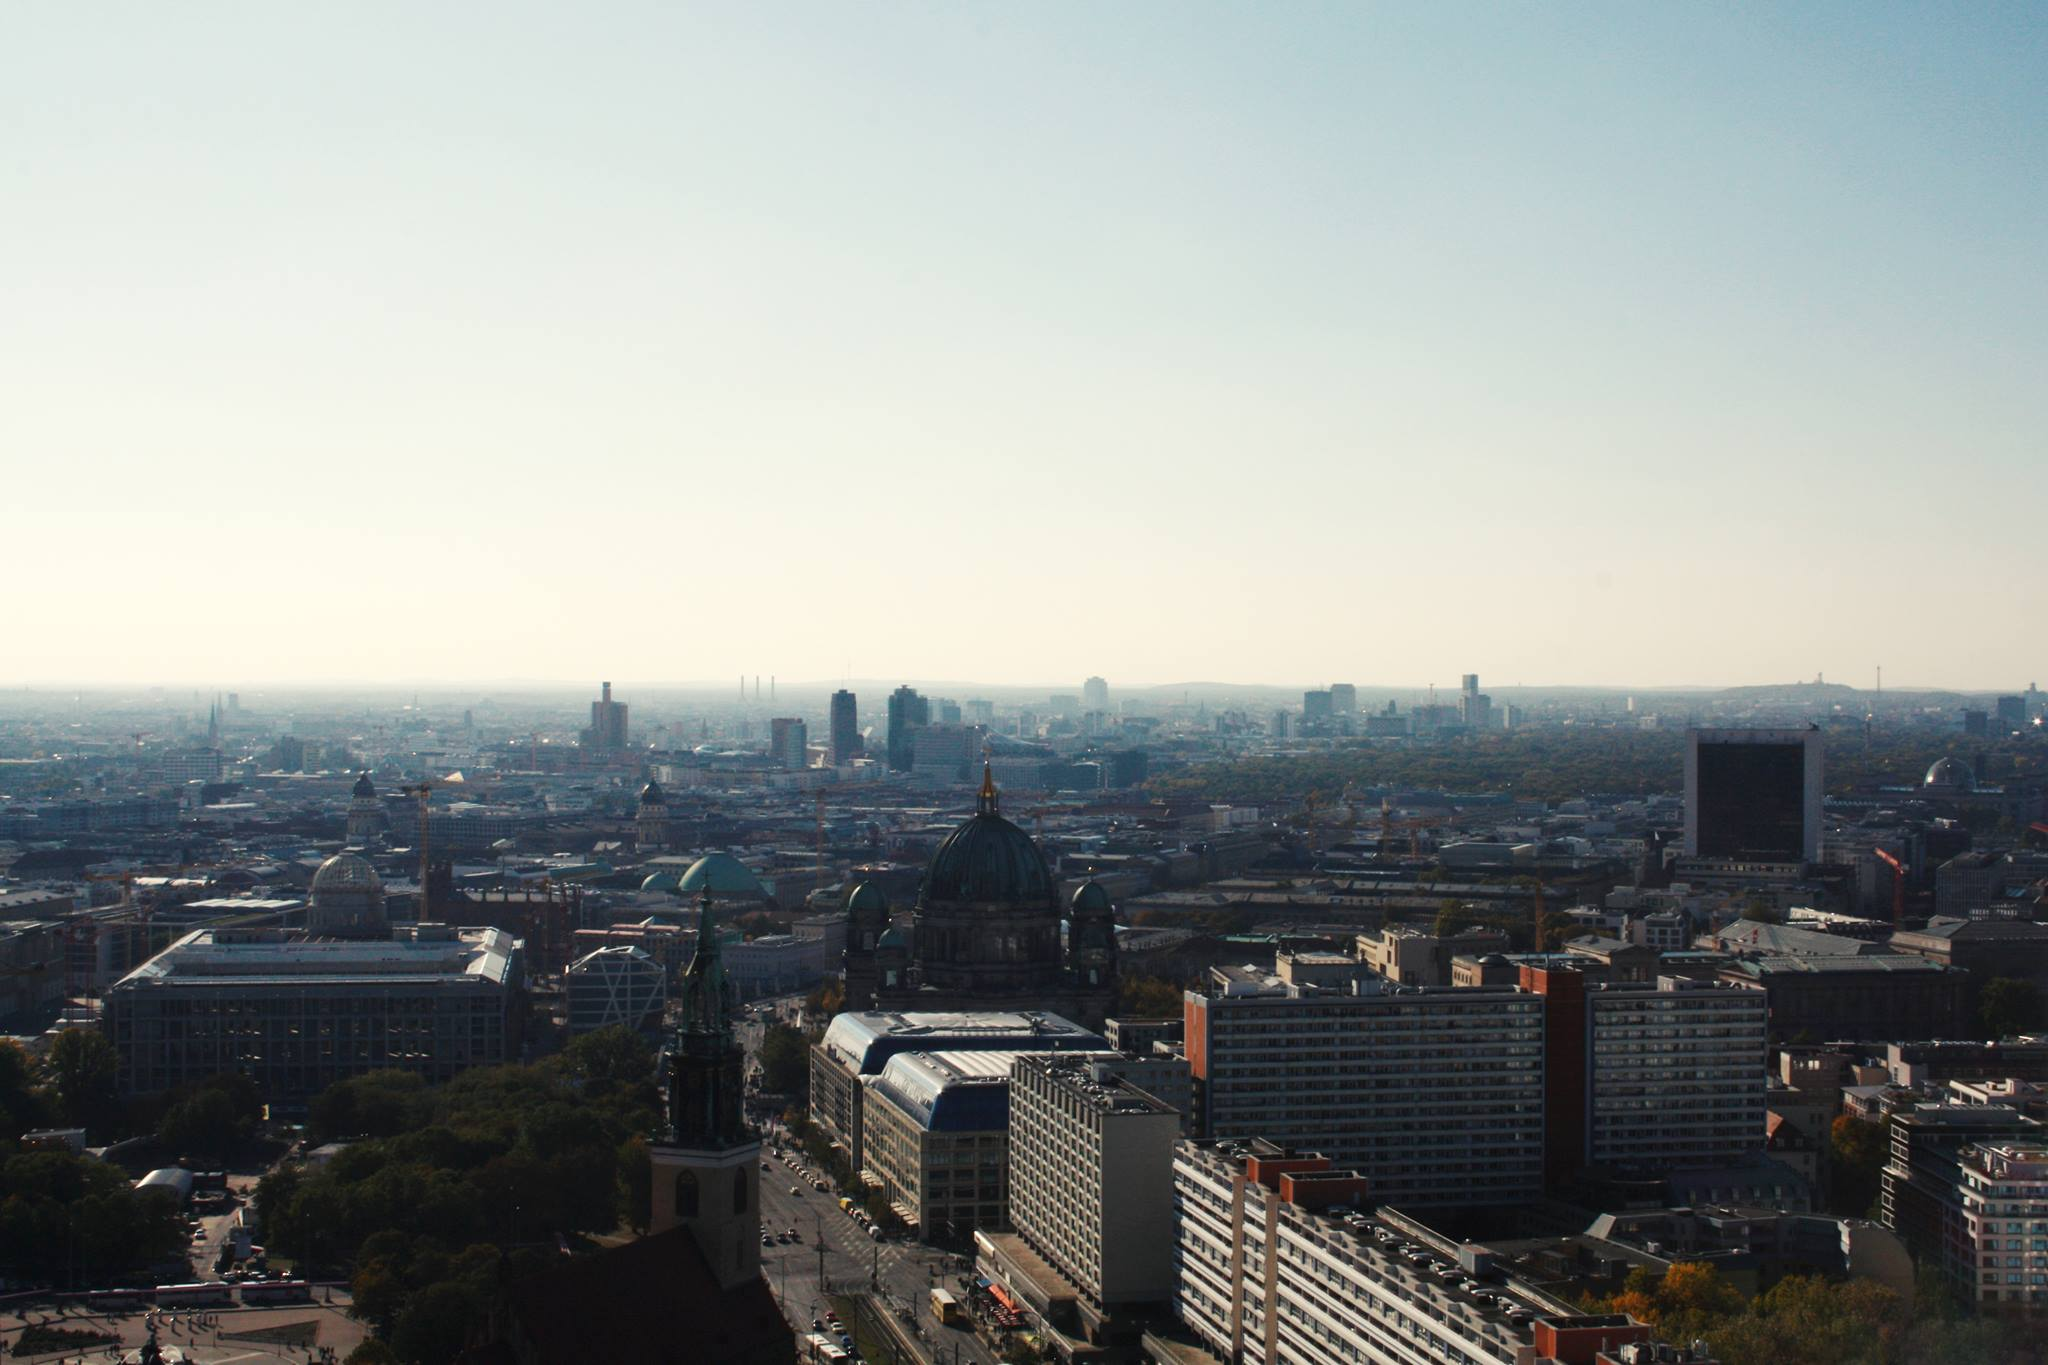 The view over Berlin